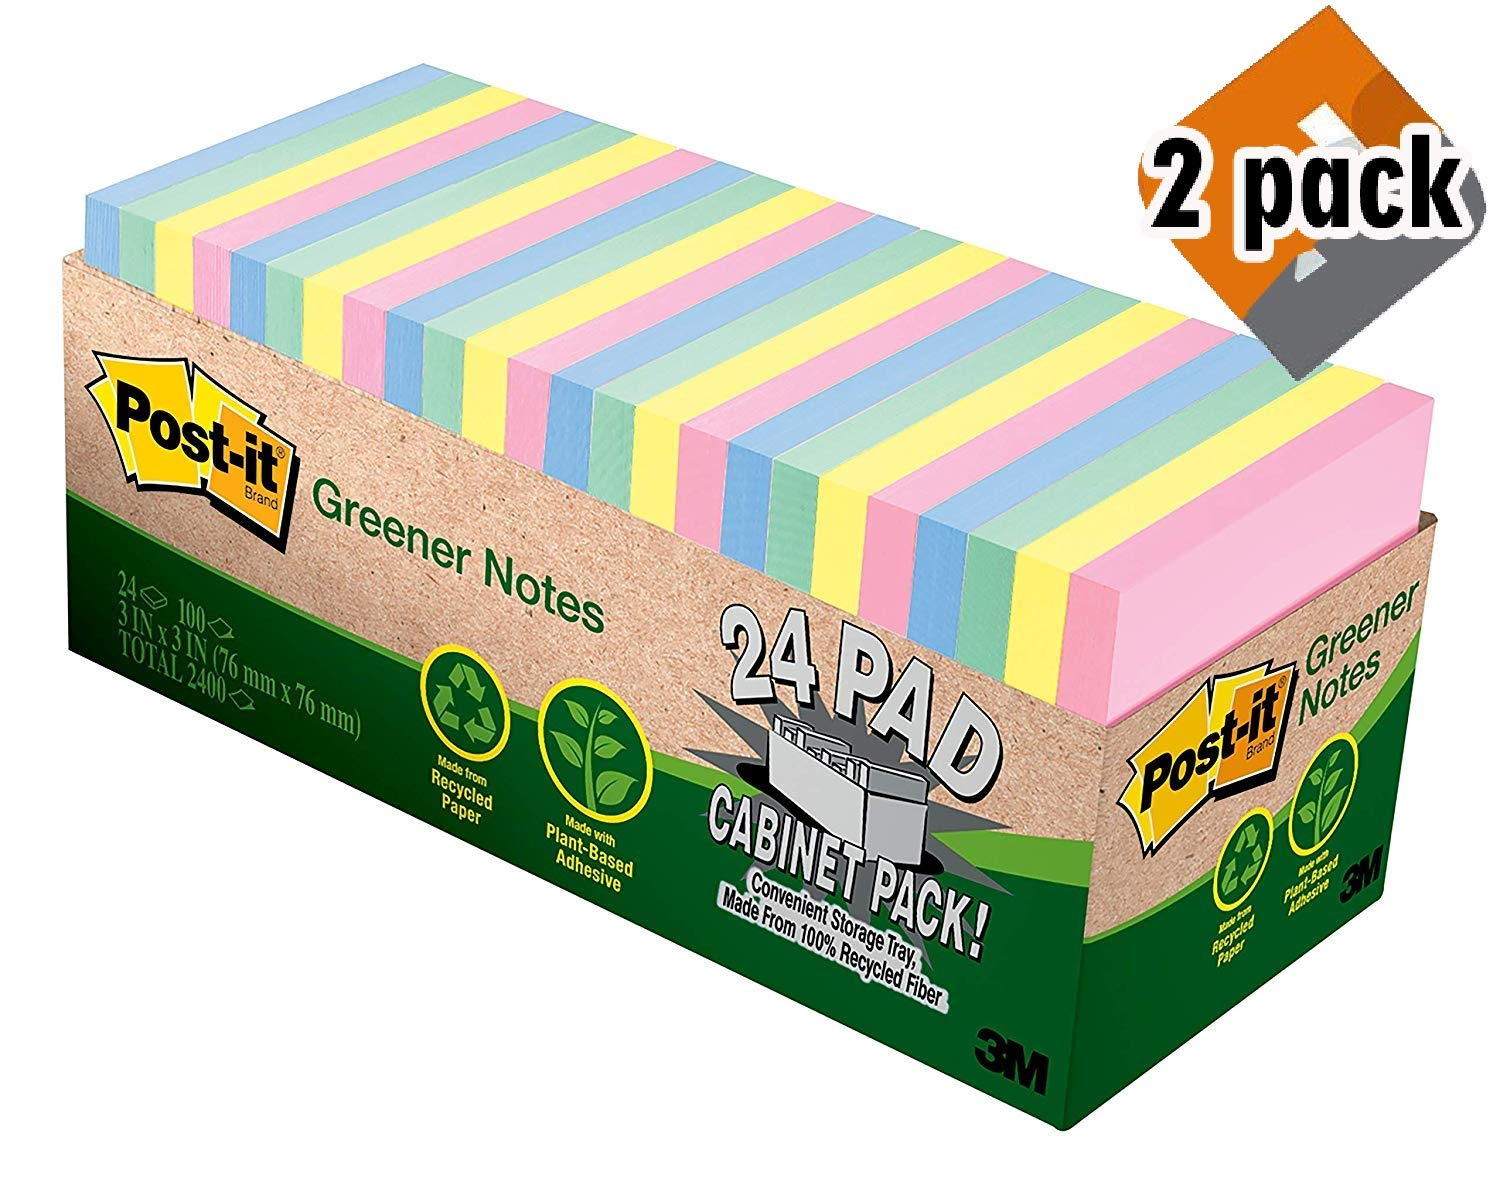 Post-it Greener Notes, Pastels, 100% Recycled Content, 3 in. x 3 in, 24 Pads/2 Pack, (654R-24CP-AP)